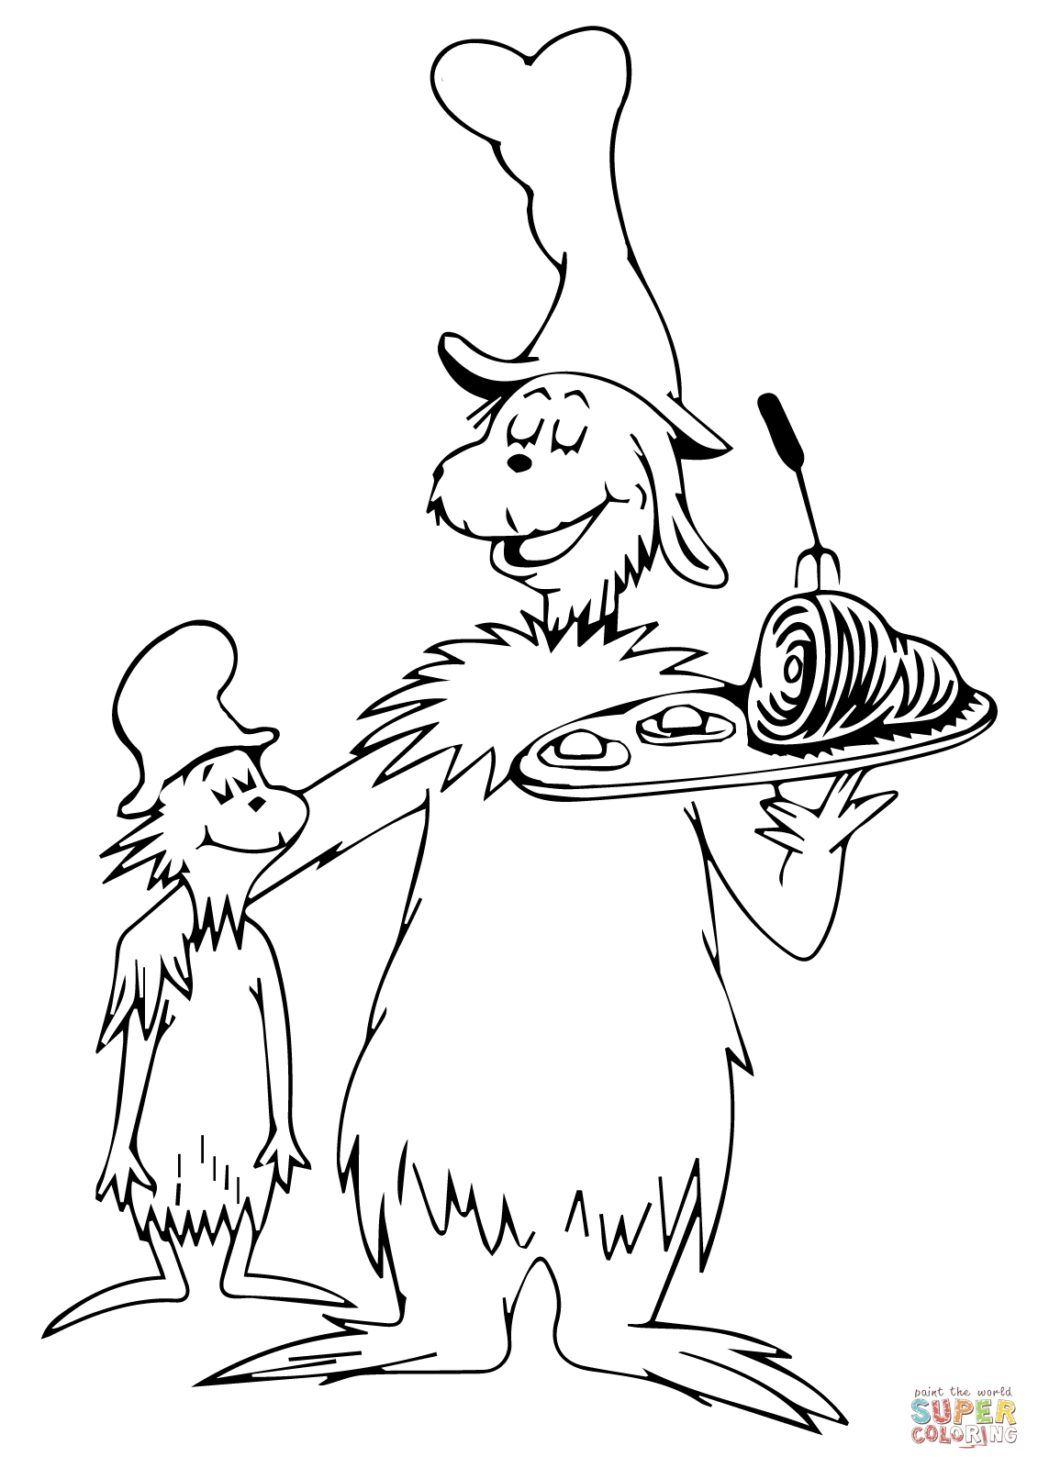 Printable Seuss Coloring Pages Book Christmas Activity Sheets Picasso The Pretty Colouring H Dr Seuss Coloring Pages Dr Seuss Coloring Sheet Dr Seuss Preschool